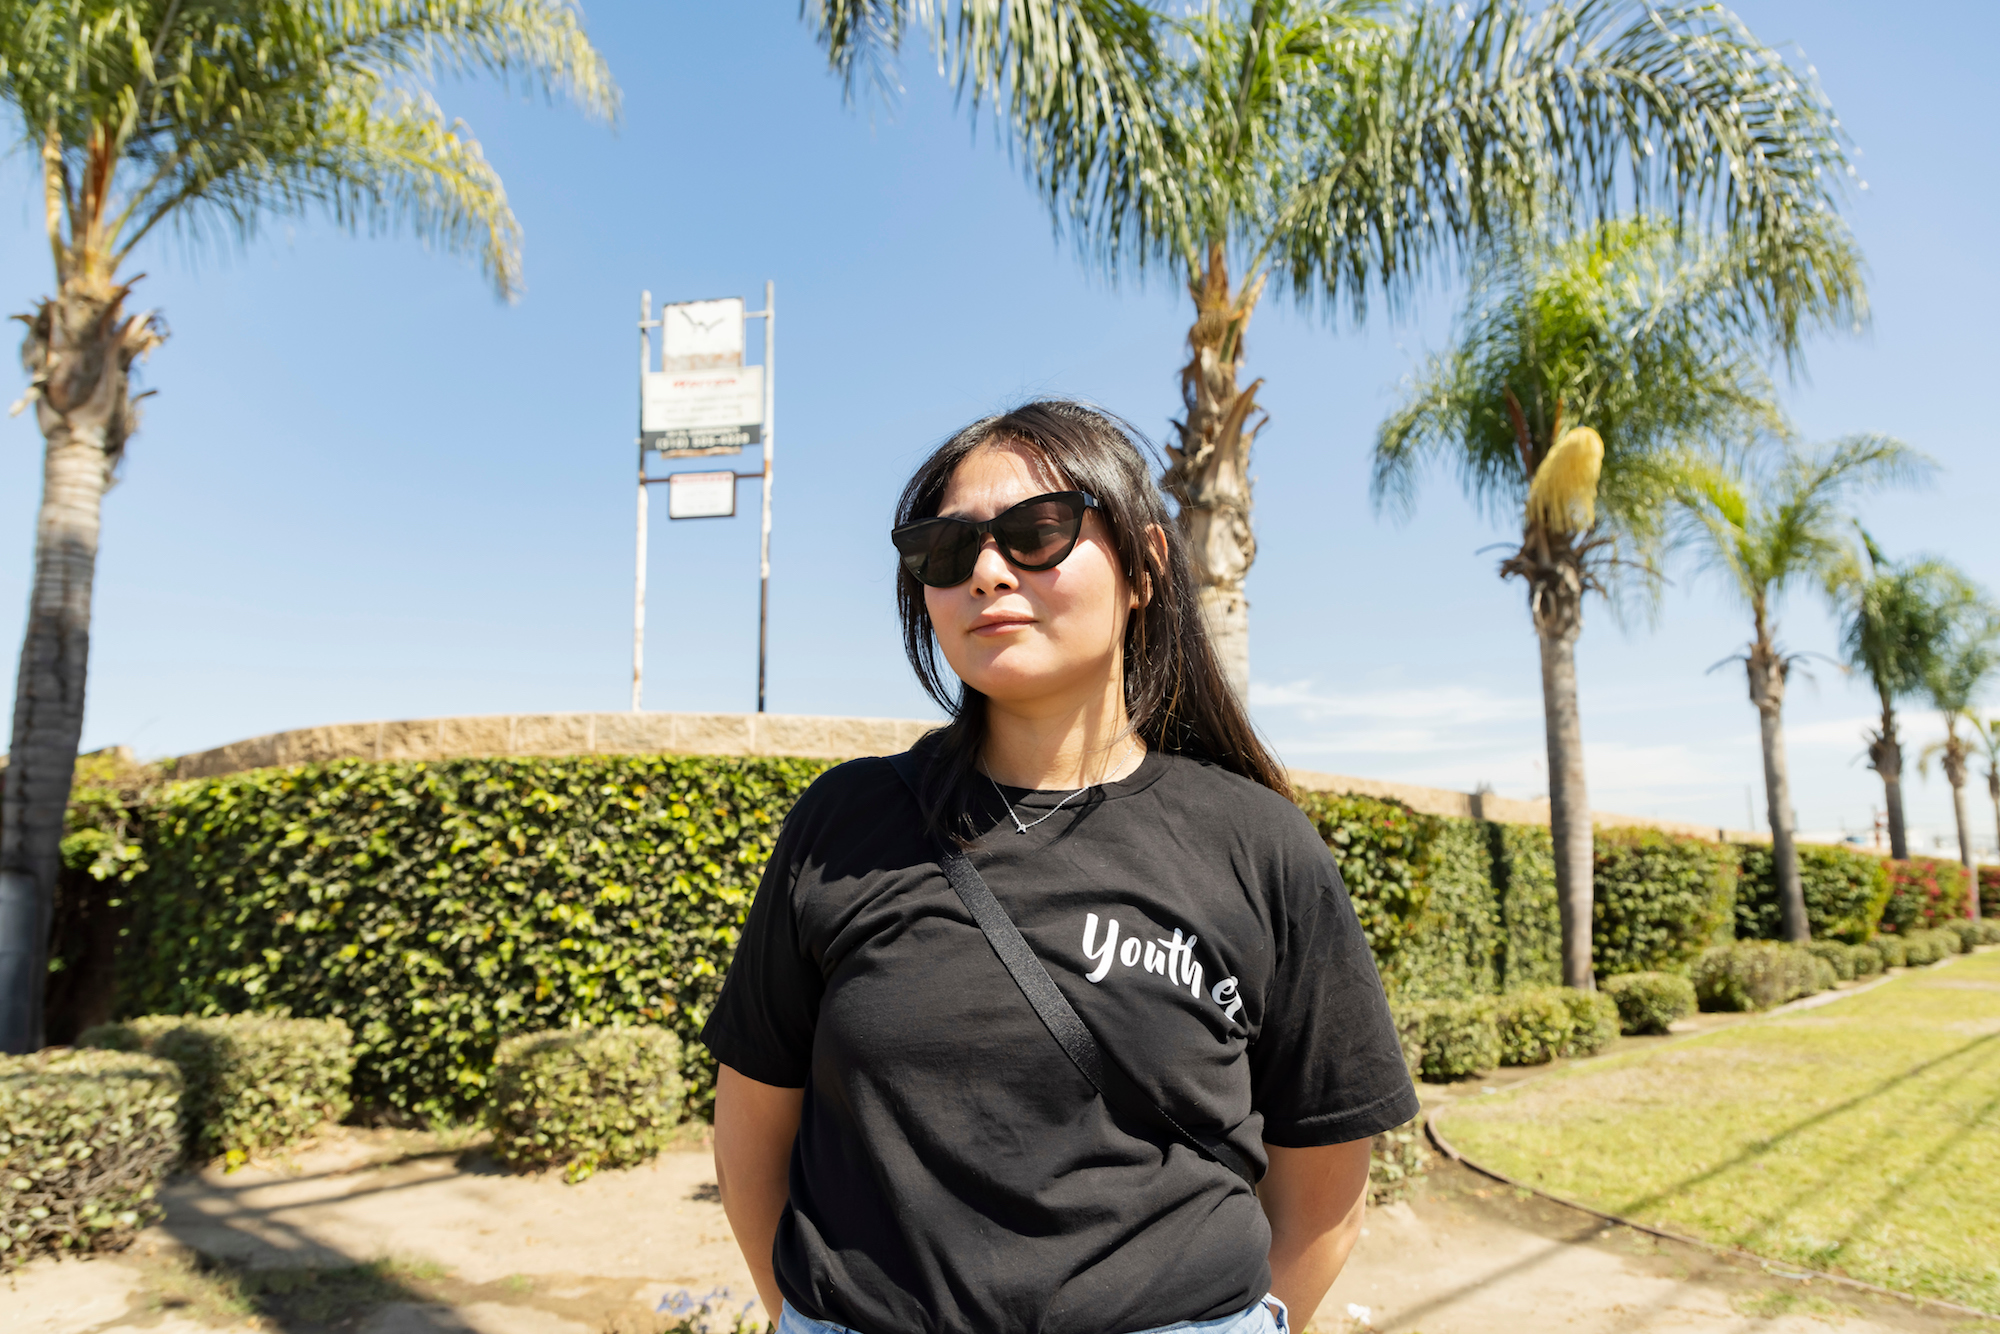 a woman with long black hair and sunglasses stands in front of a sunny street with oil infrastructure in the background